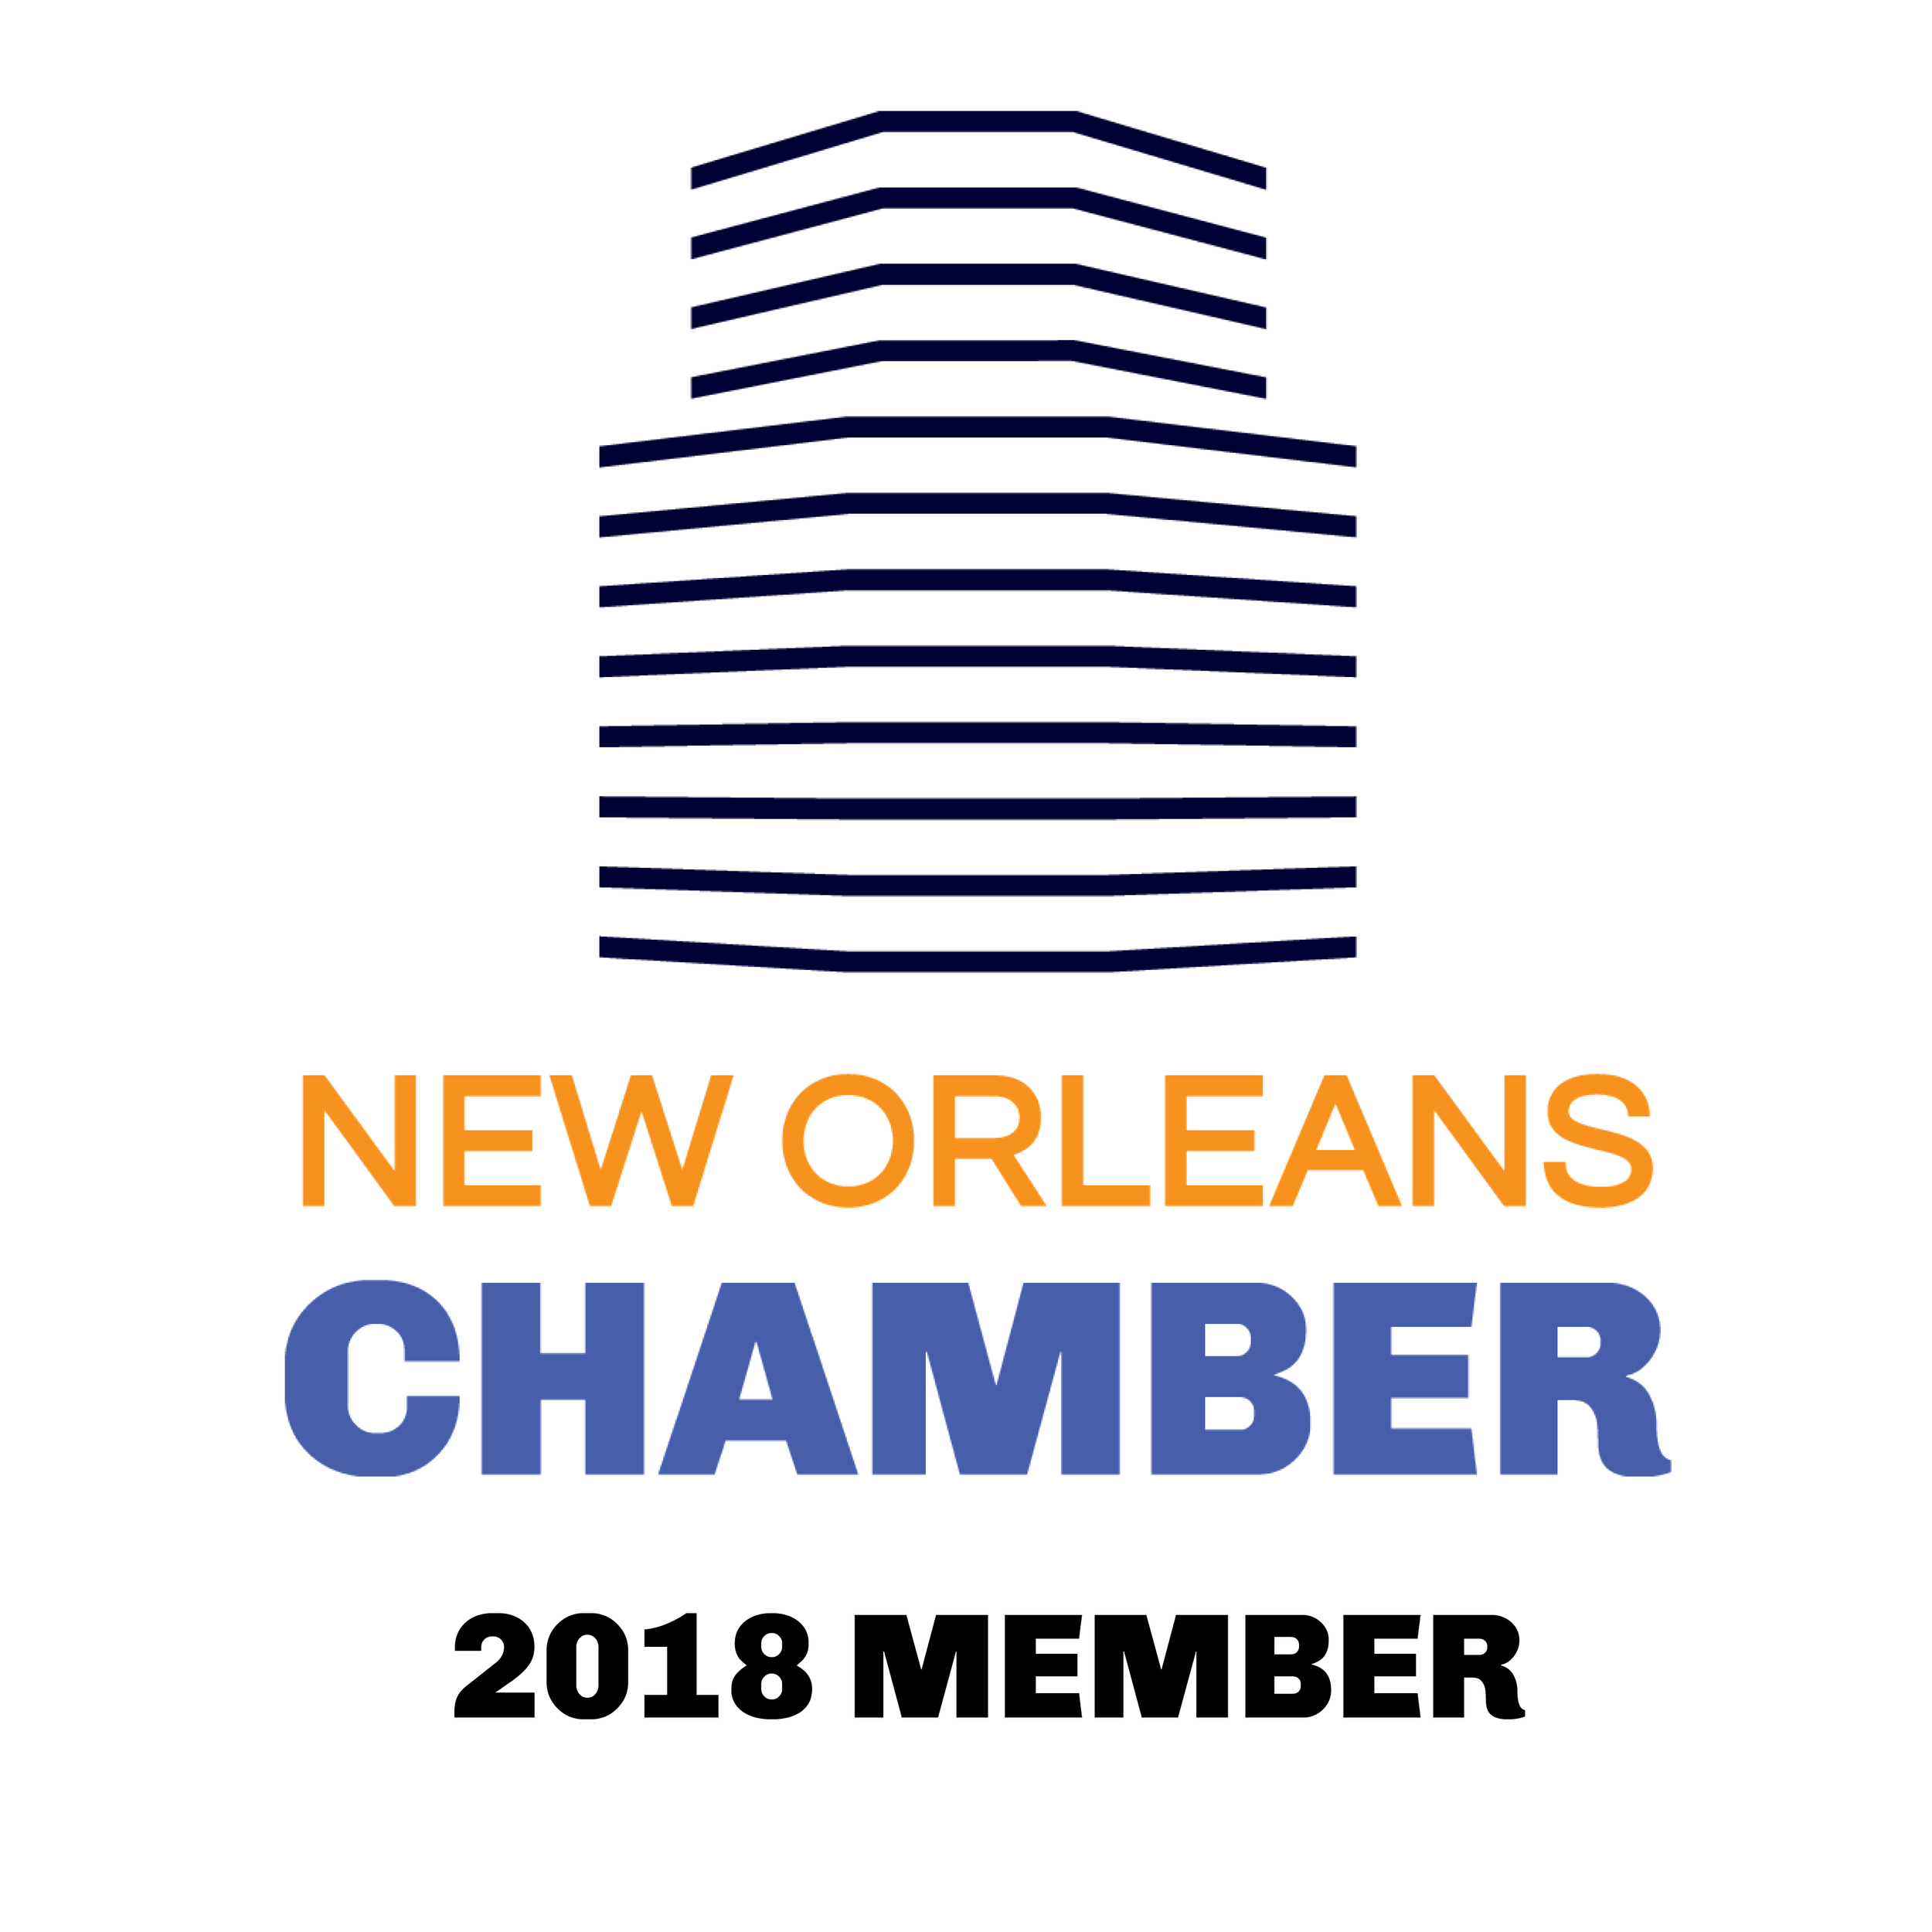 New Orleans Chamber of Commerce 2018 Member